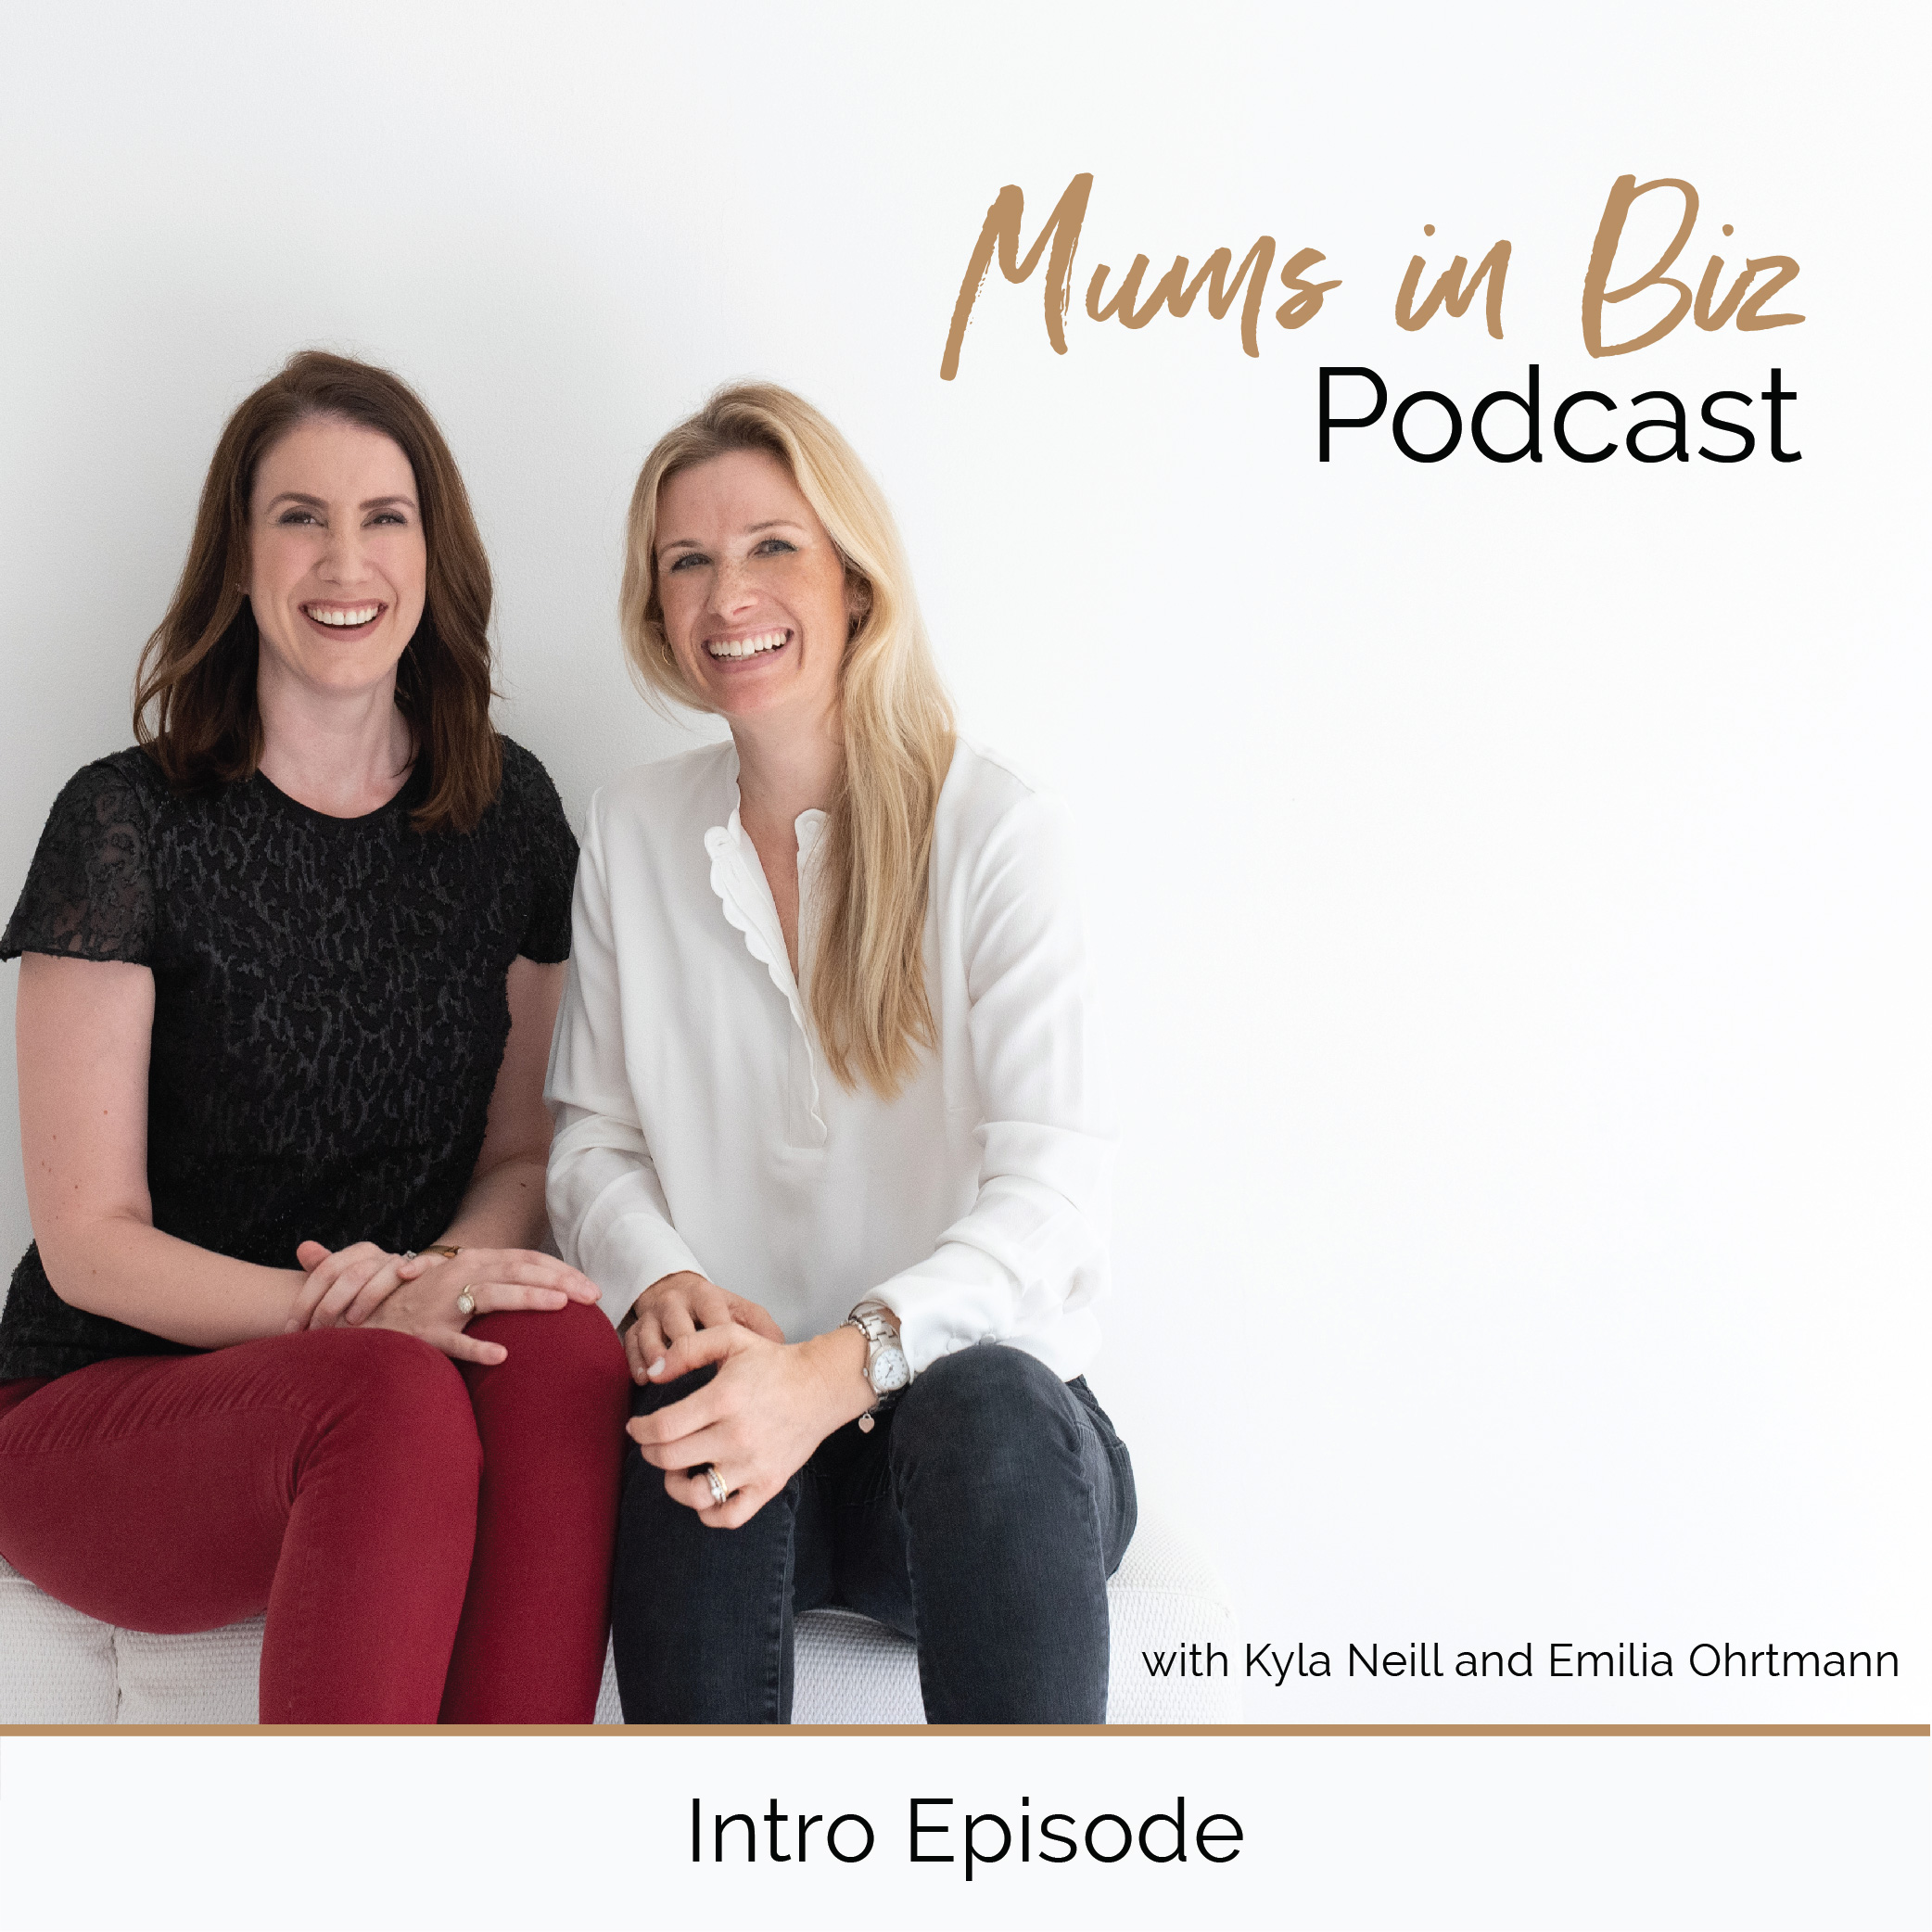 Mums in Biz Podcast | Intro Episode